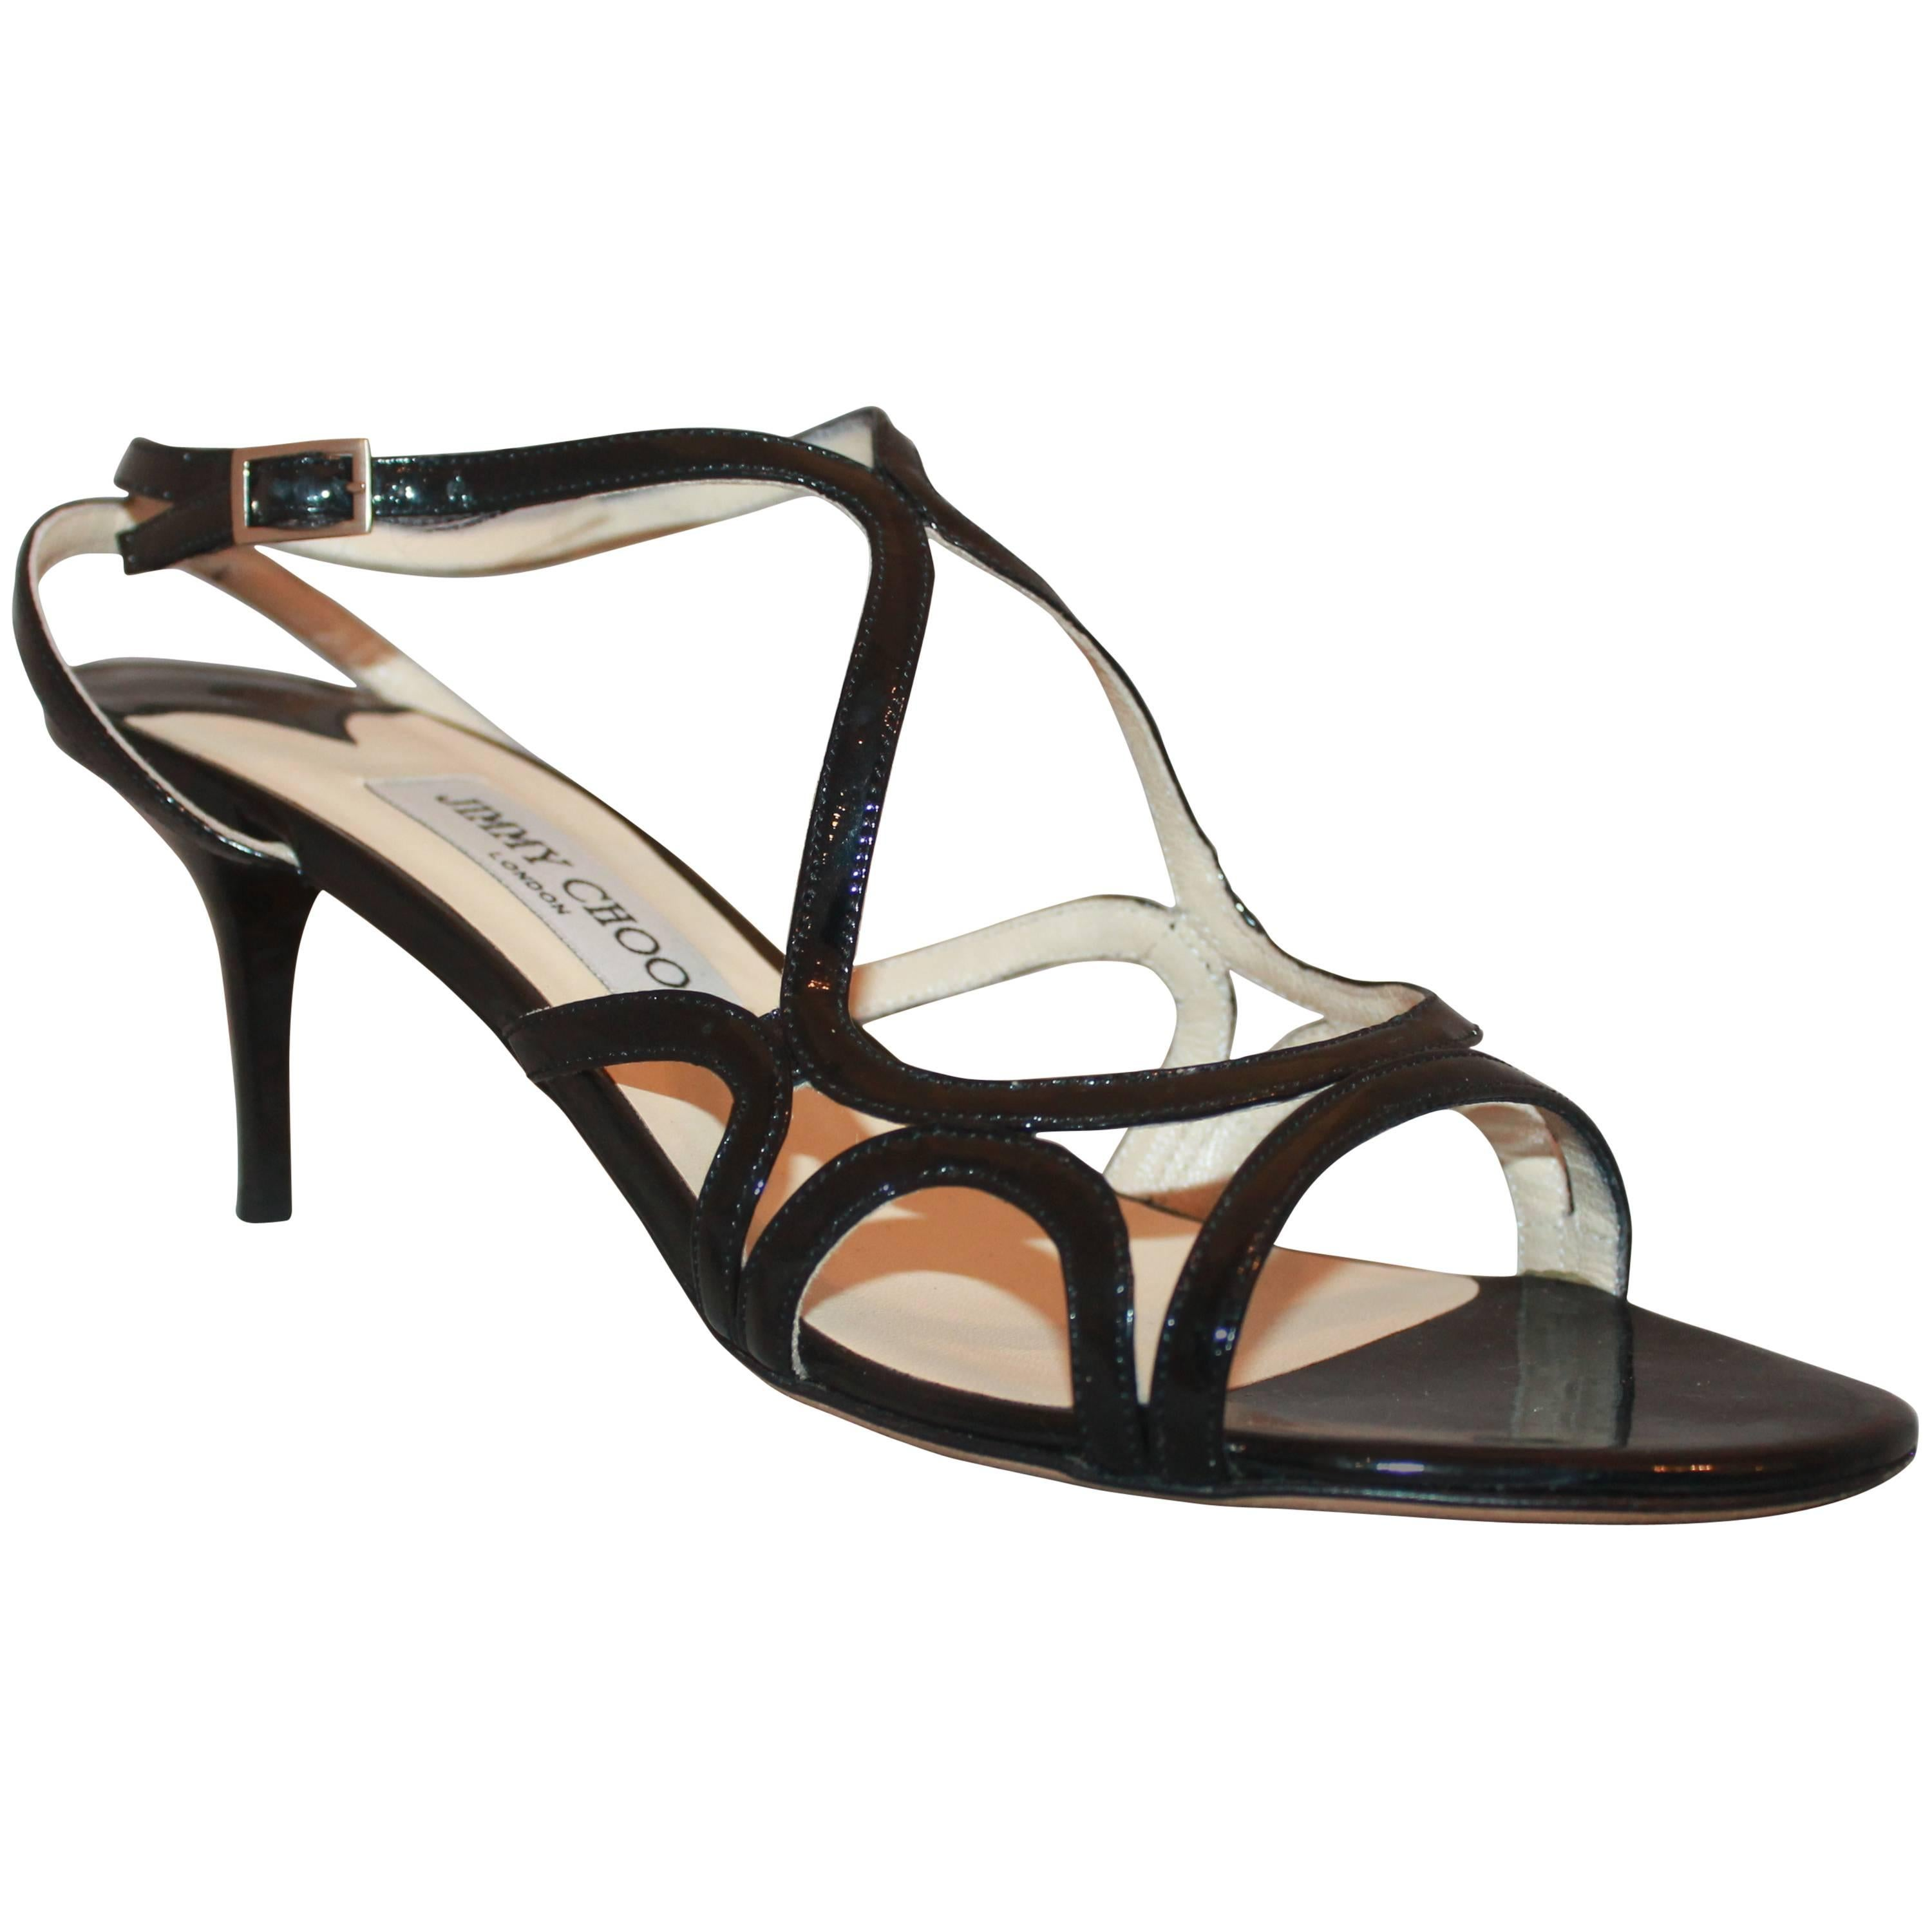 22e93a9fcf7 Jimmy Choo Black Patent Strappy Sandal Heels - 40 For Sale at 1stdibs